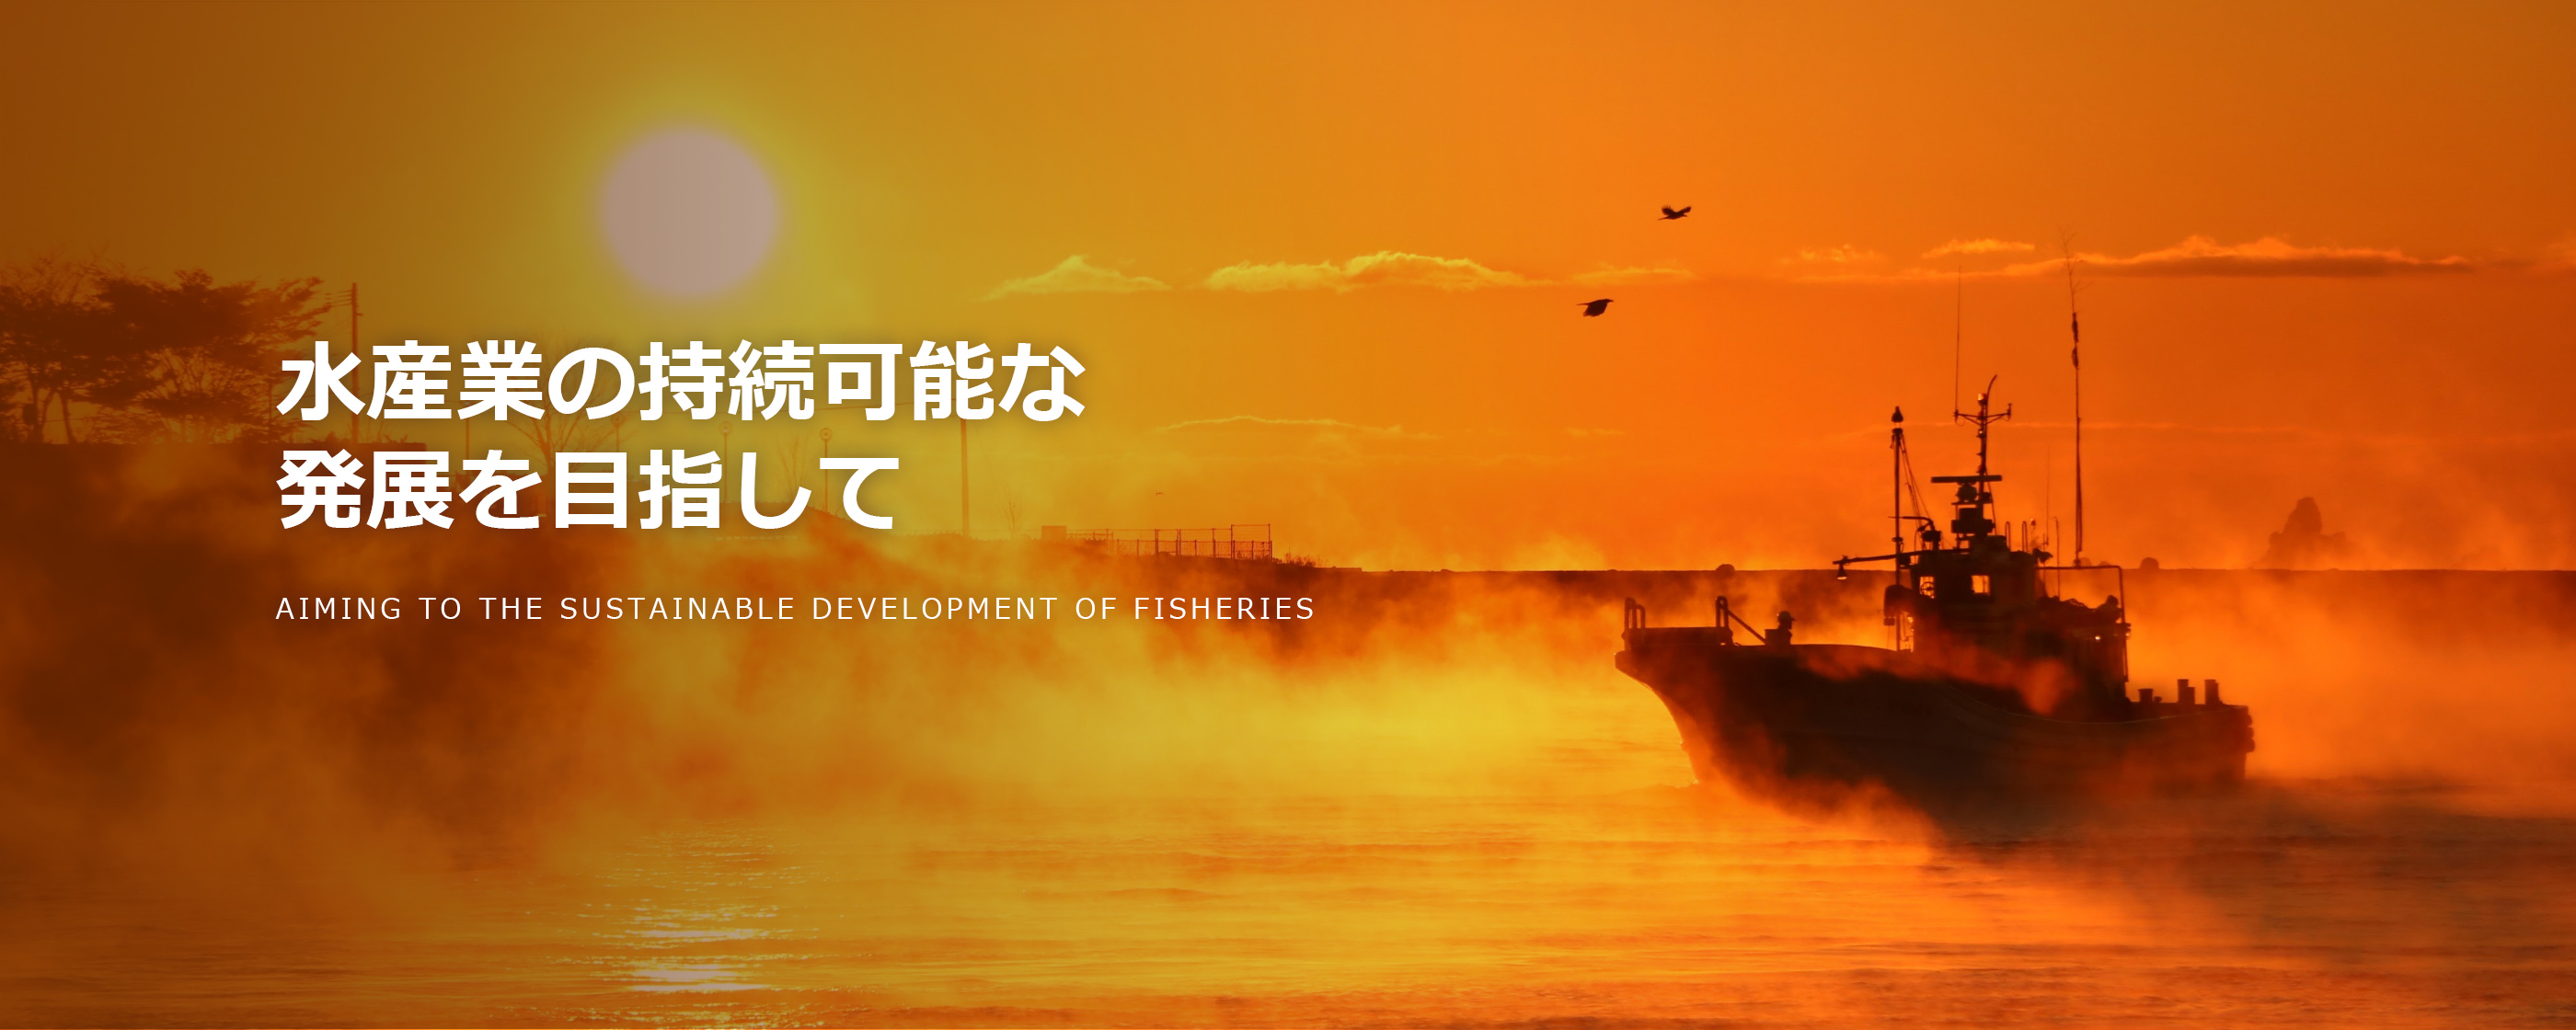 水産業の持続可能な発展を目指して AIMING TO THE SUSTAINABLE DEVELOPMENT OF FISHERIES